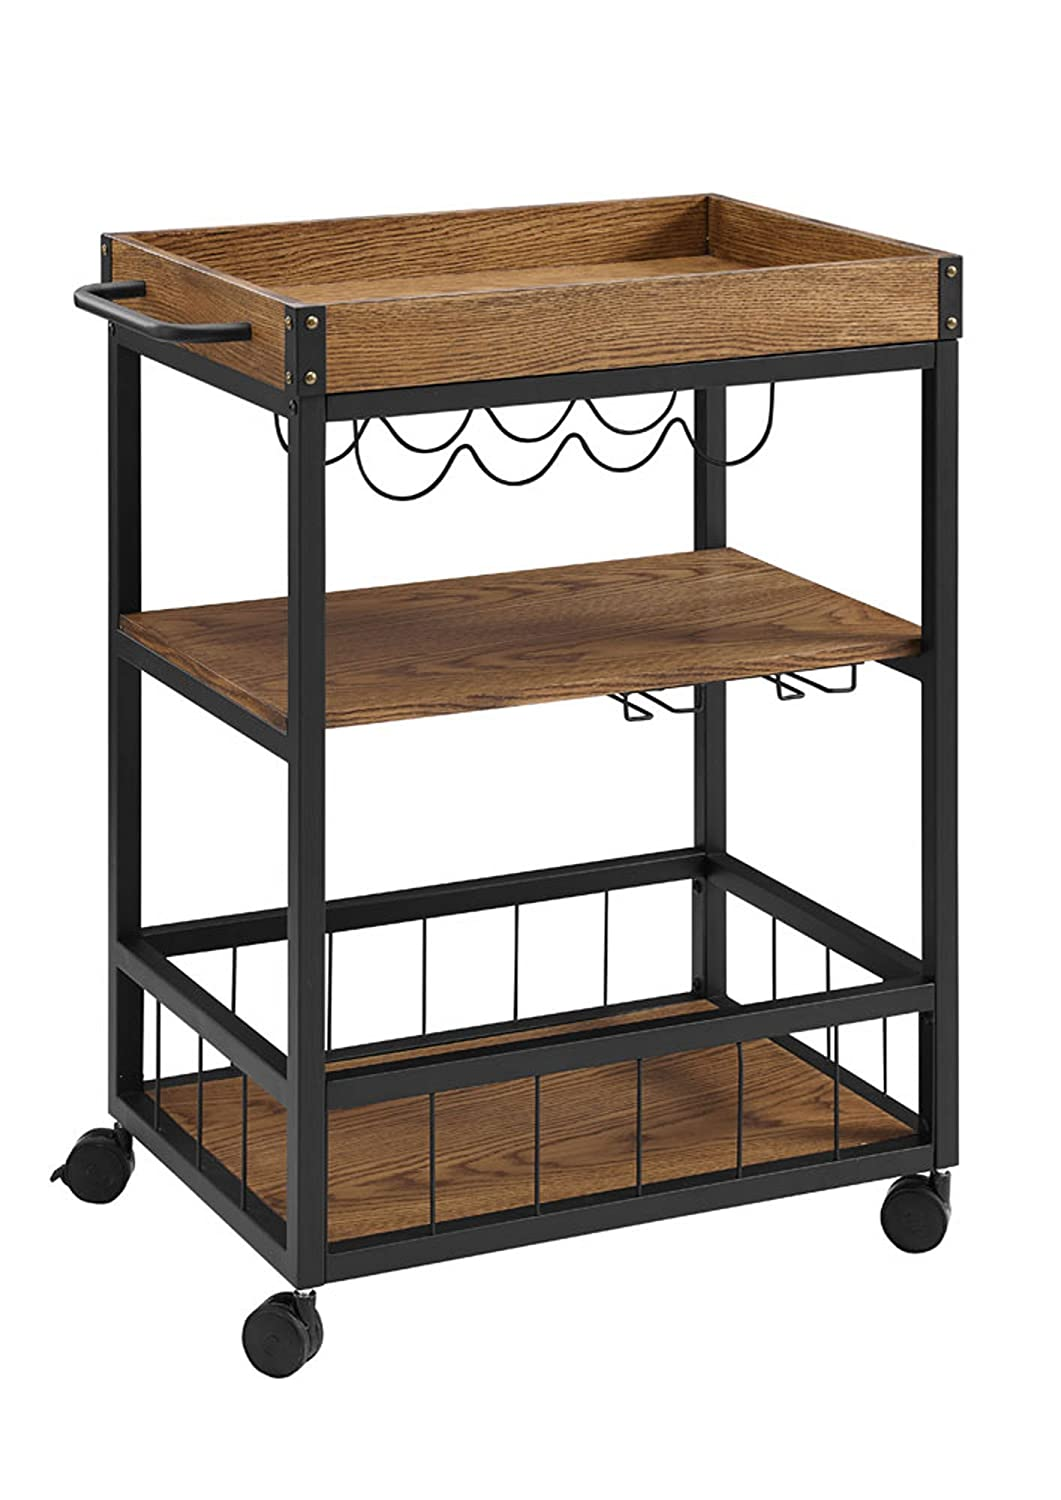 Amazon.com: Linon Austin Kitchen Cart: Kitchen & Dining